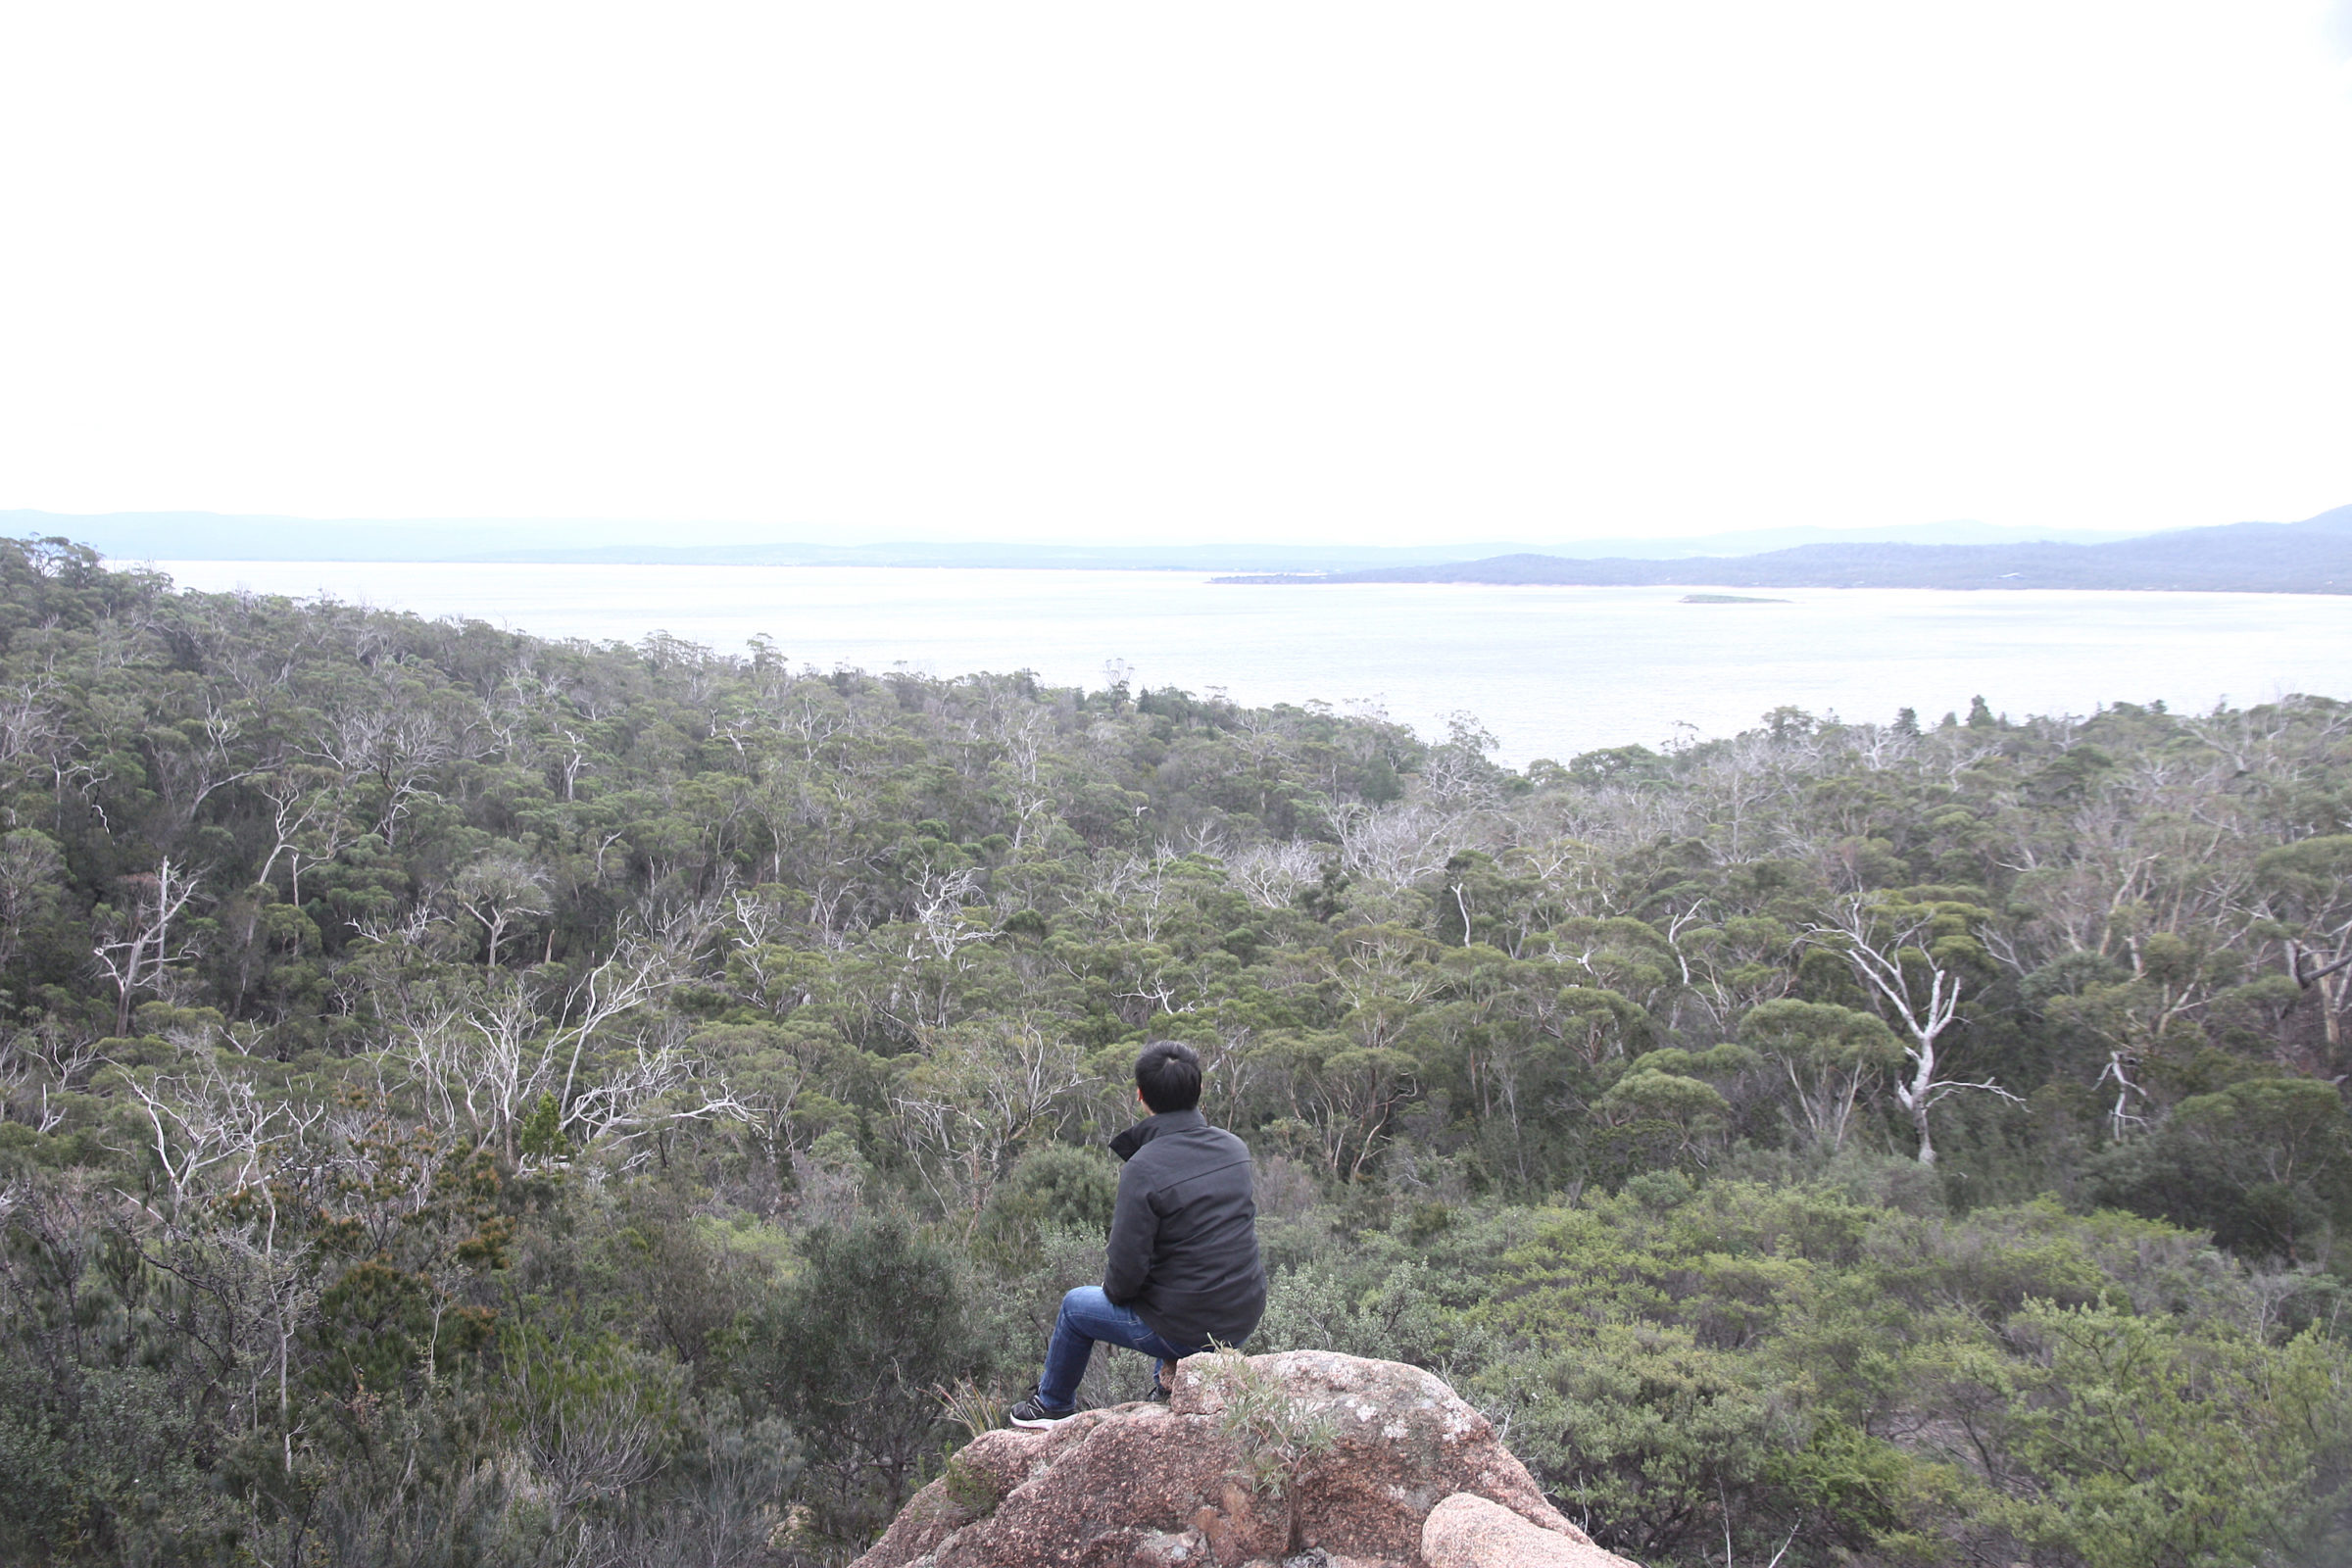 Tasmania Road Trip Itinerary, Day 5: Freycinet National Park